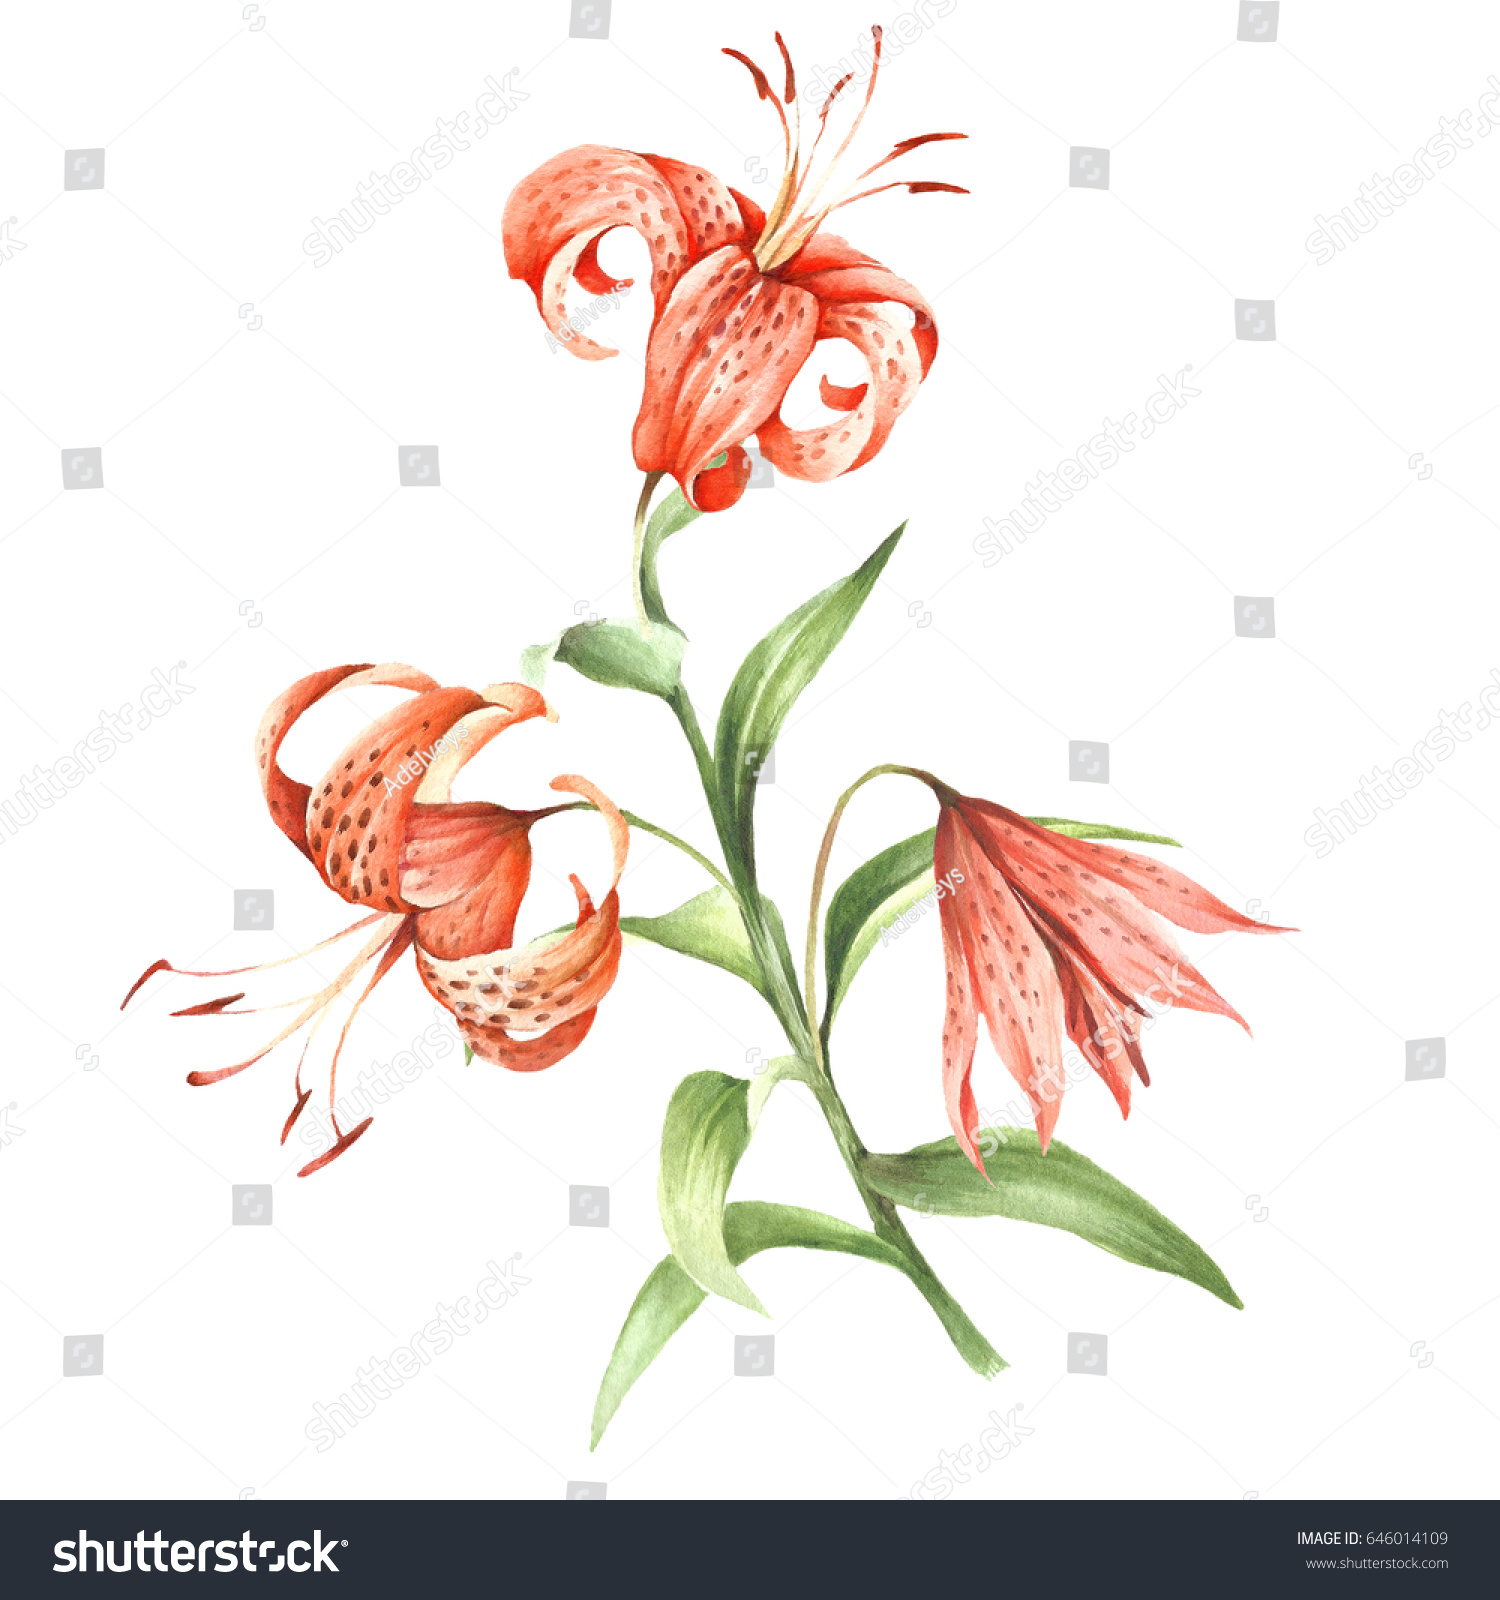 Image Tiger Lily Flowers Hand Draw Stock Illustration 646014109